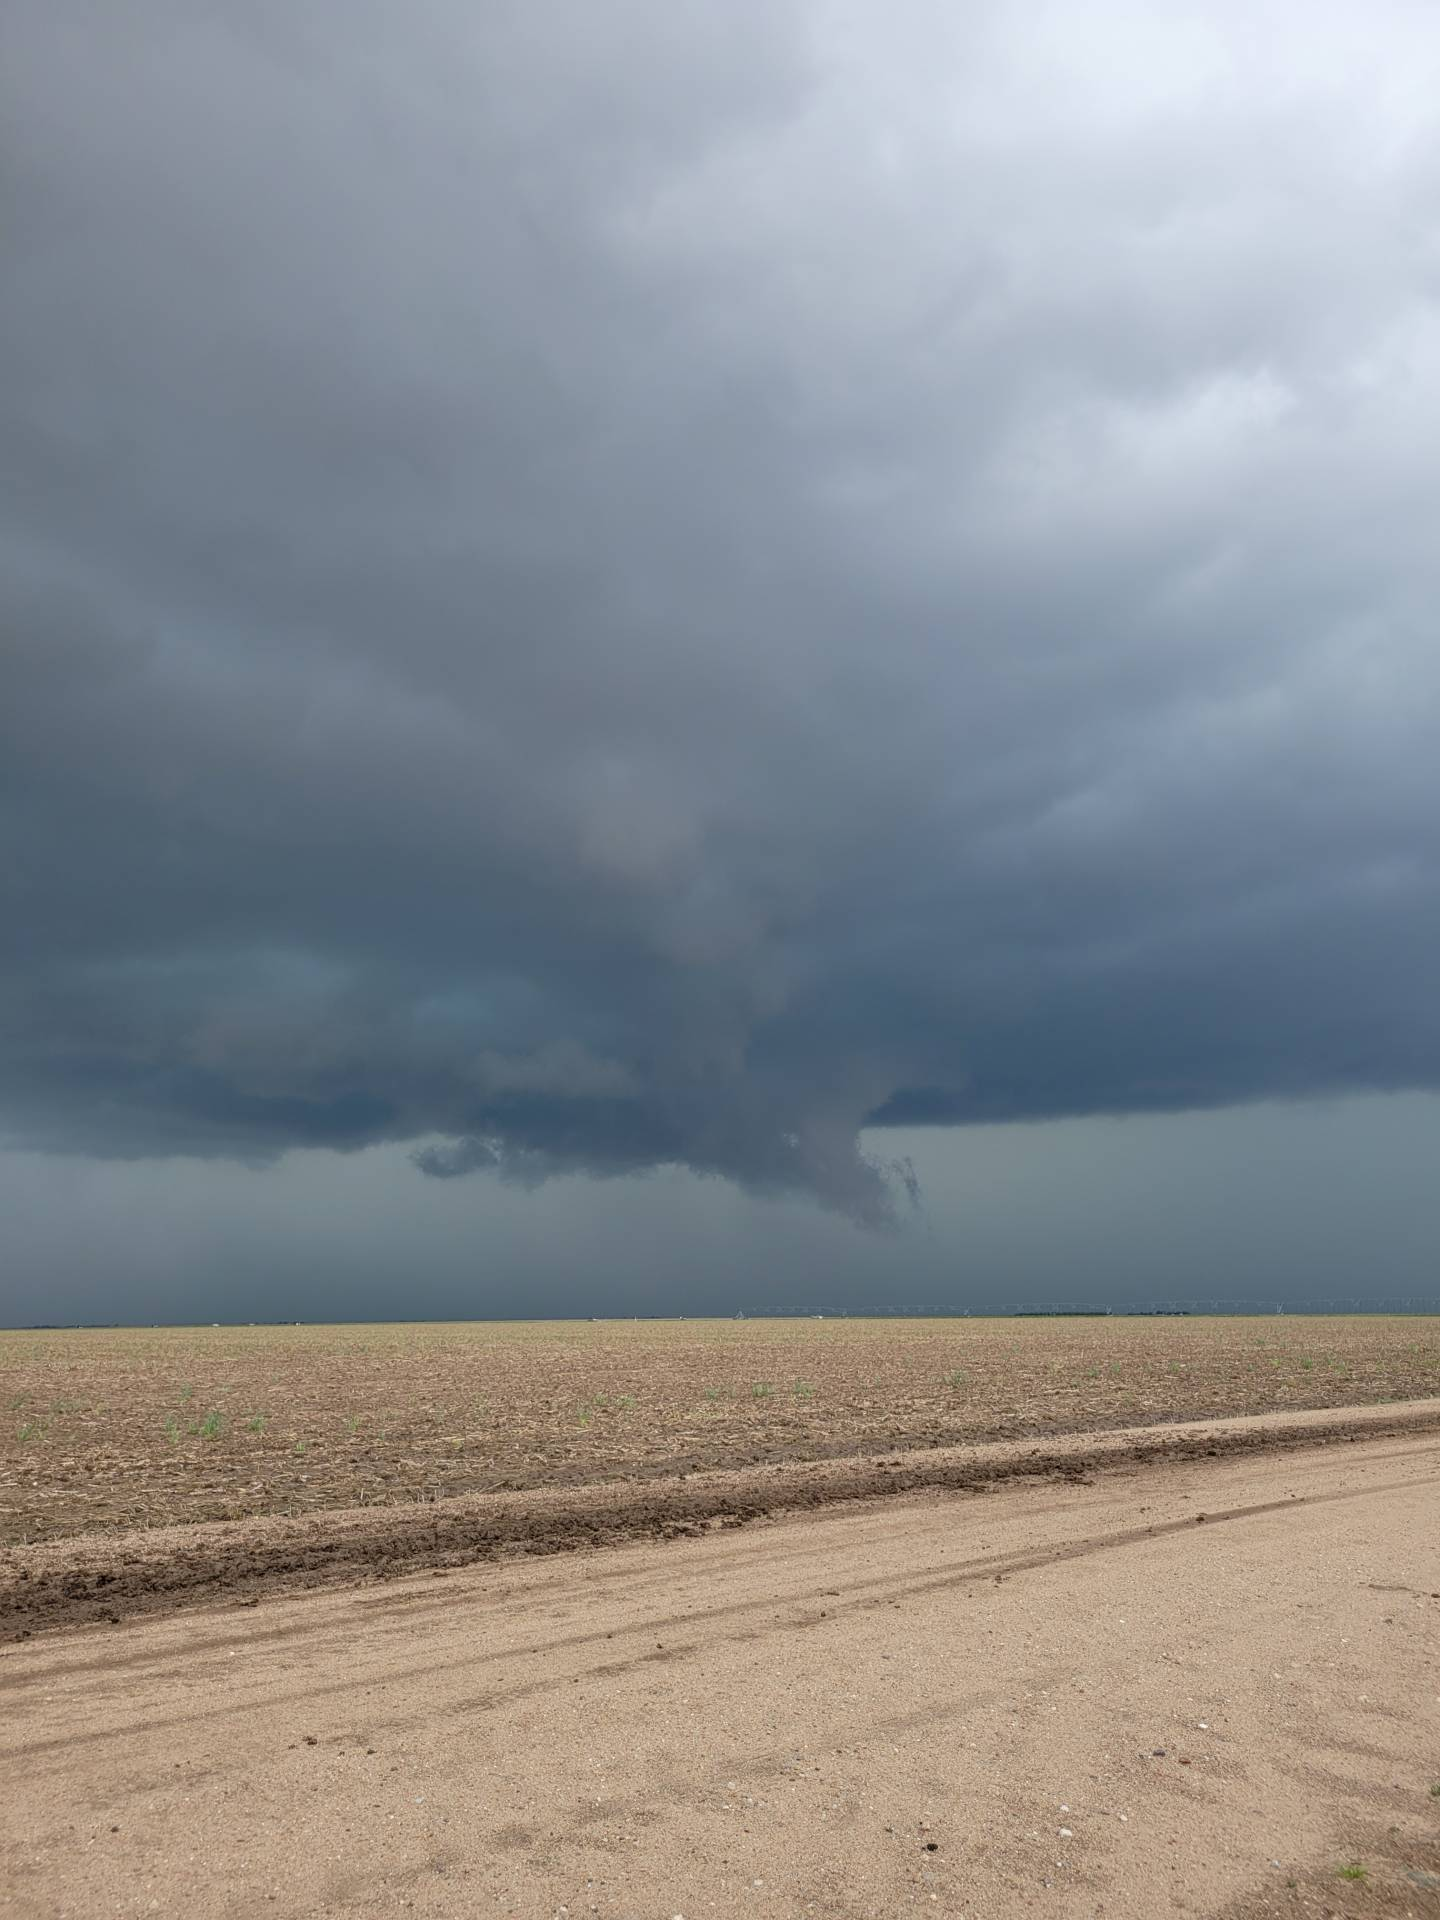 The storm north of Leoti appears to be intensifying.  #kswx